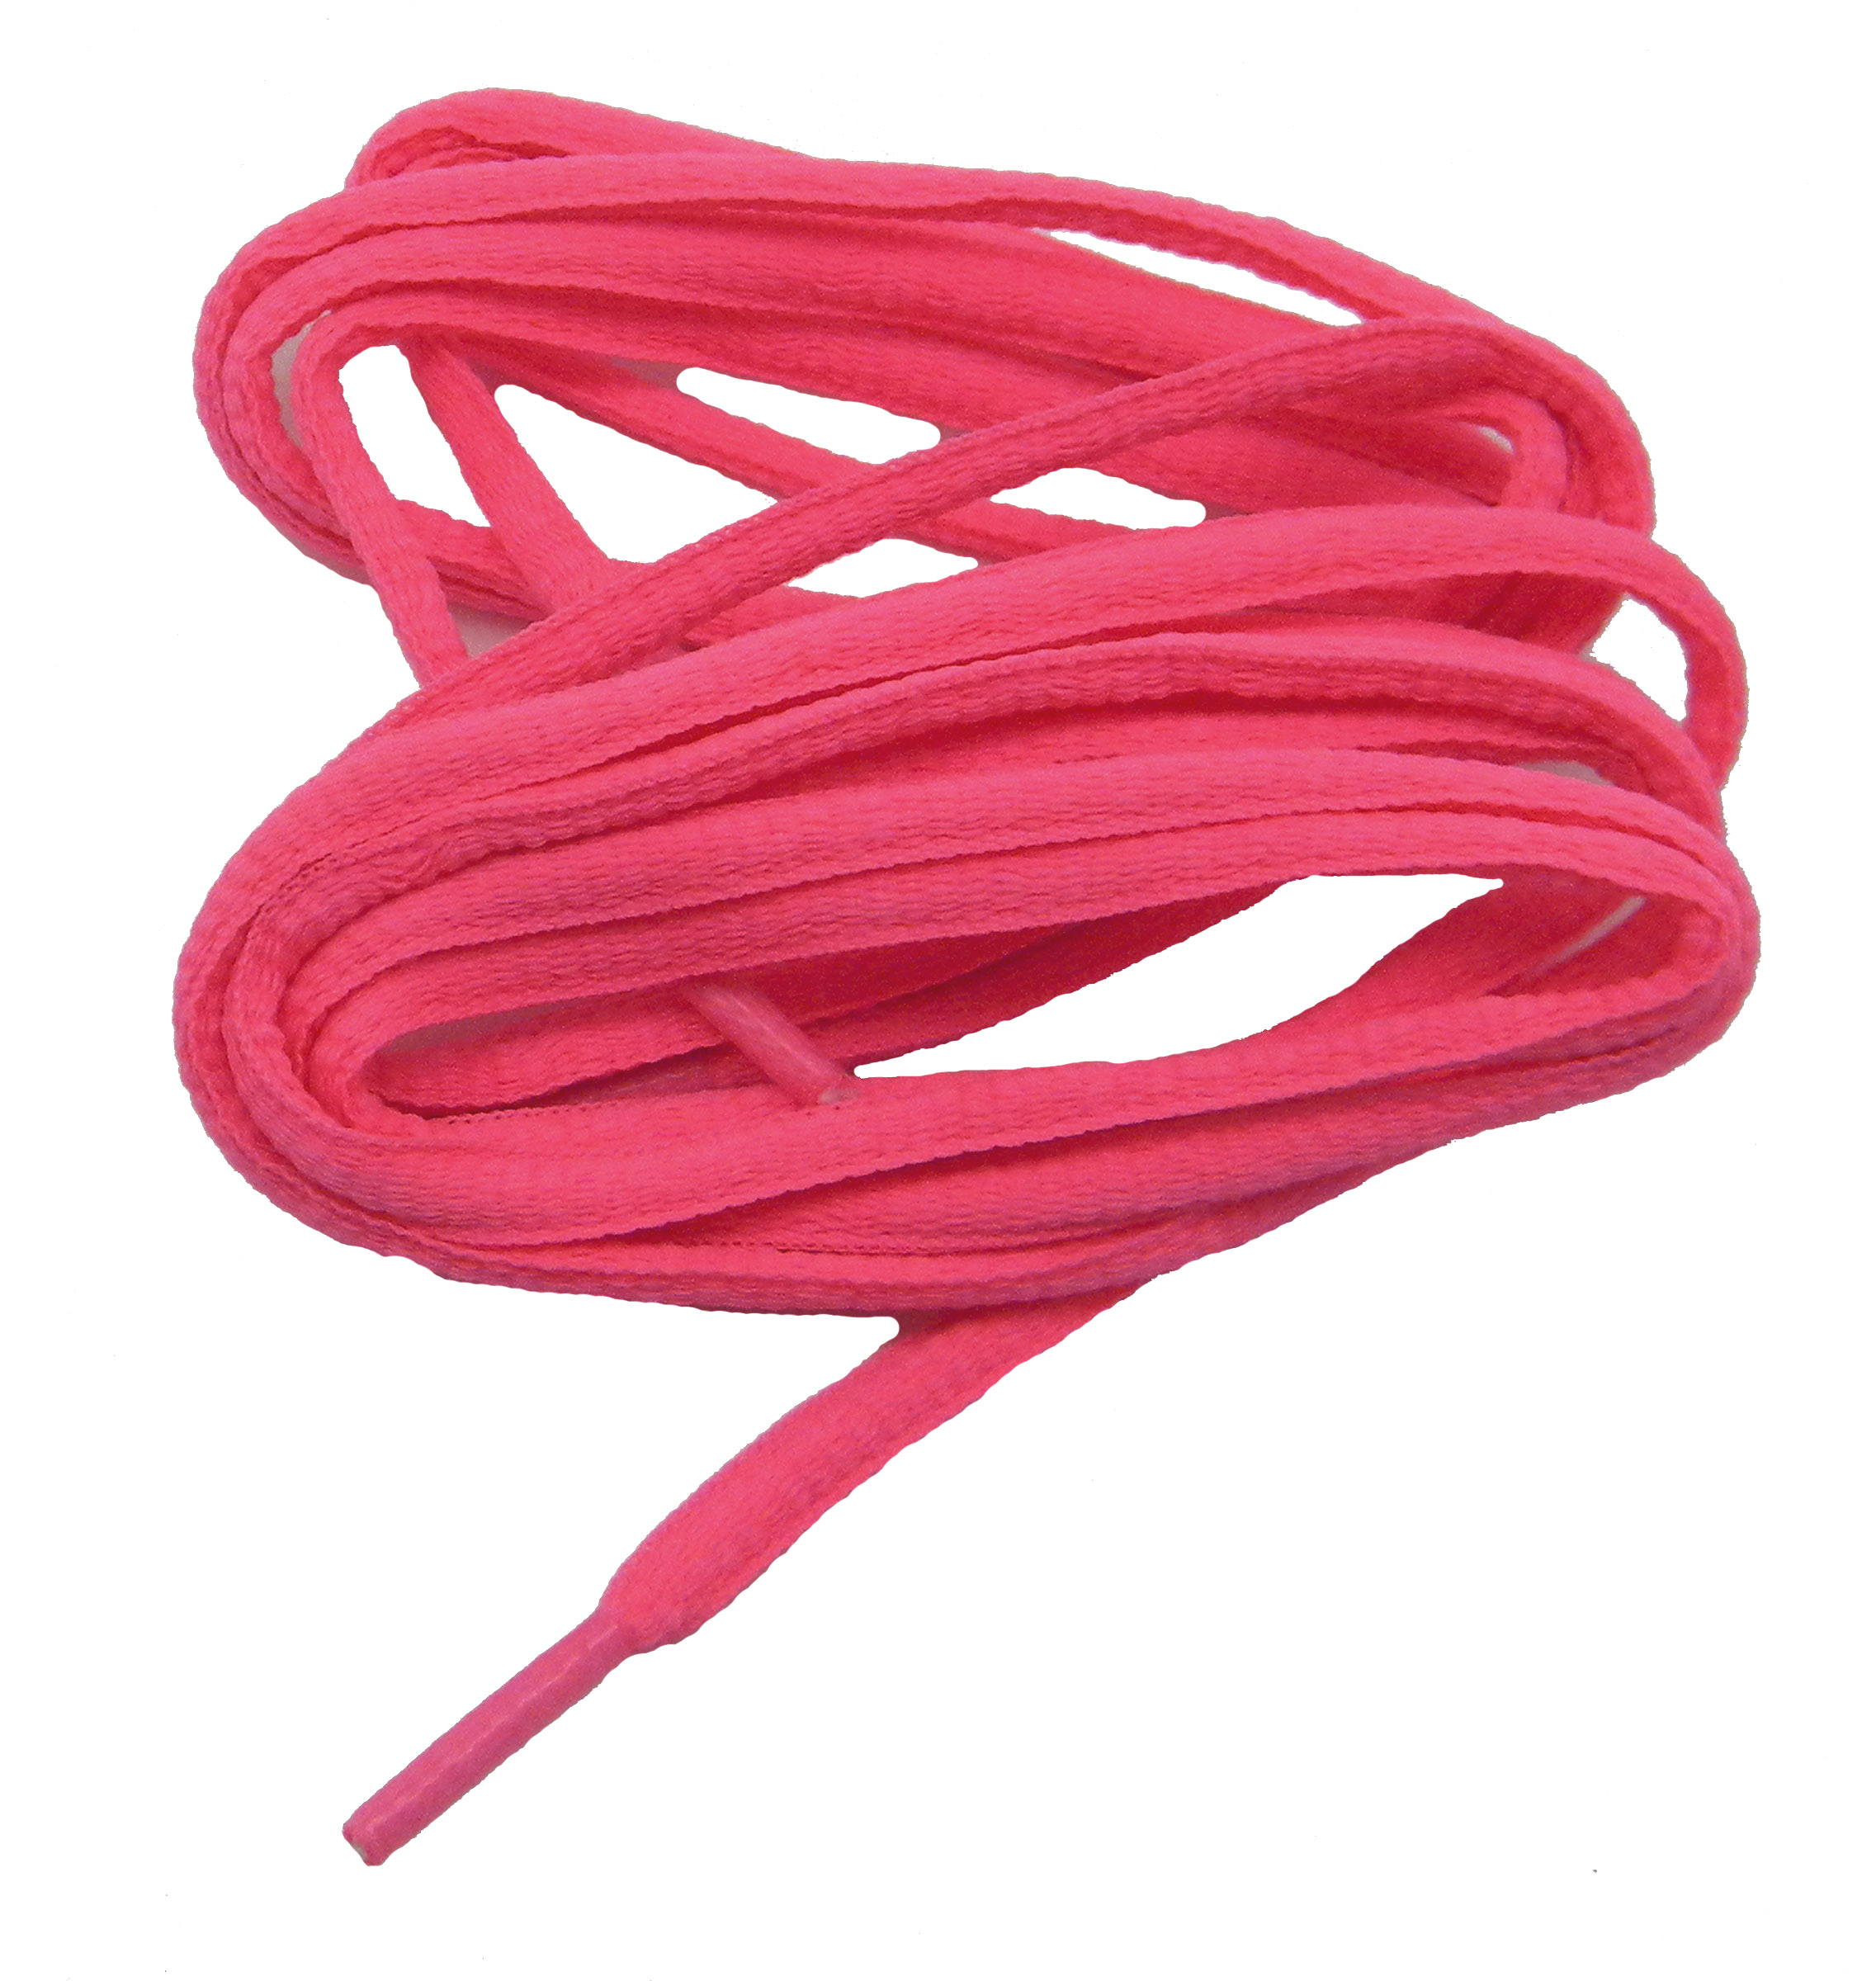 48 Inch 122 cm HOT Neon Pink BCA Pink professional proATHLETIC™ Oval sneaker shoelaces - (2 Pair Pack)